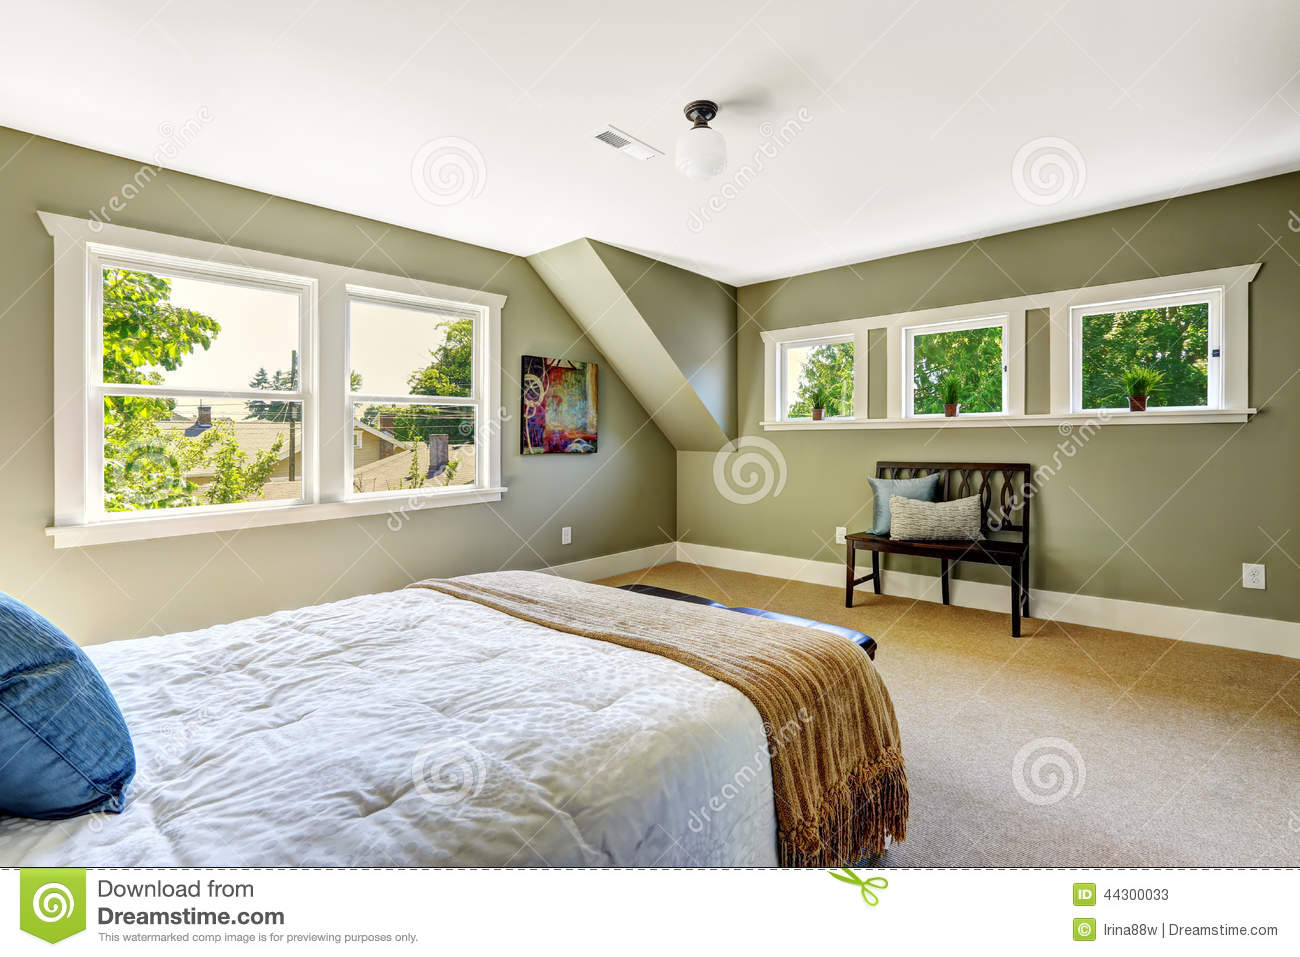 Bedroom With Green Walls And Vaulted Ceiling Stock Photo